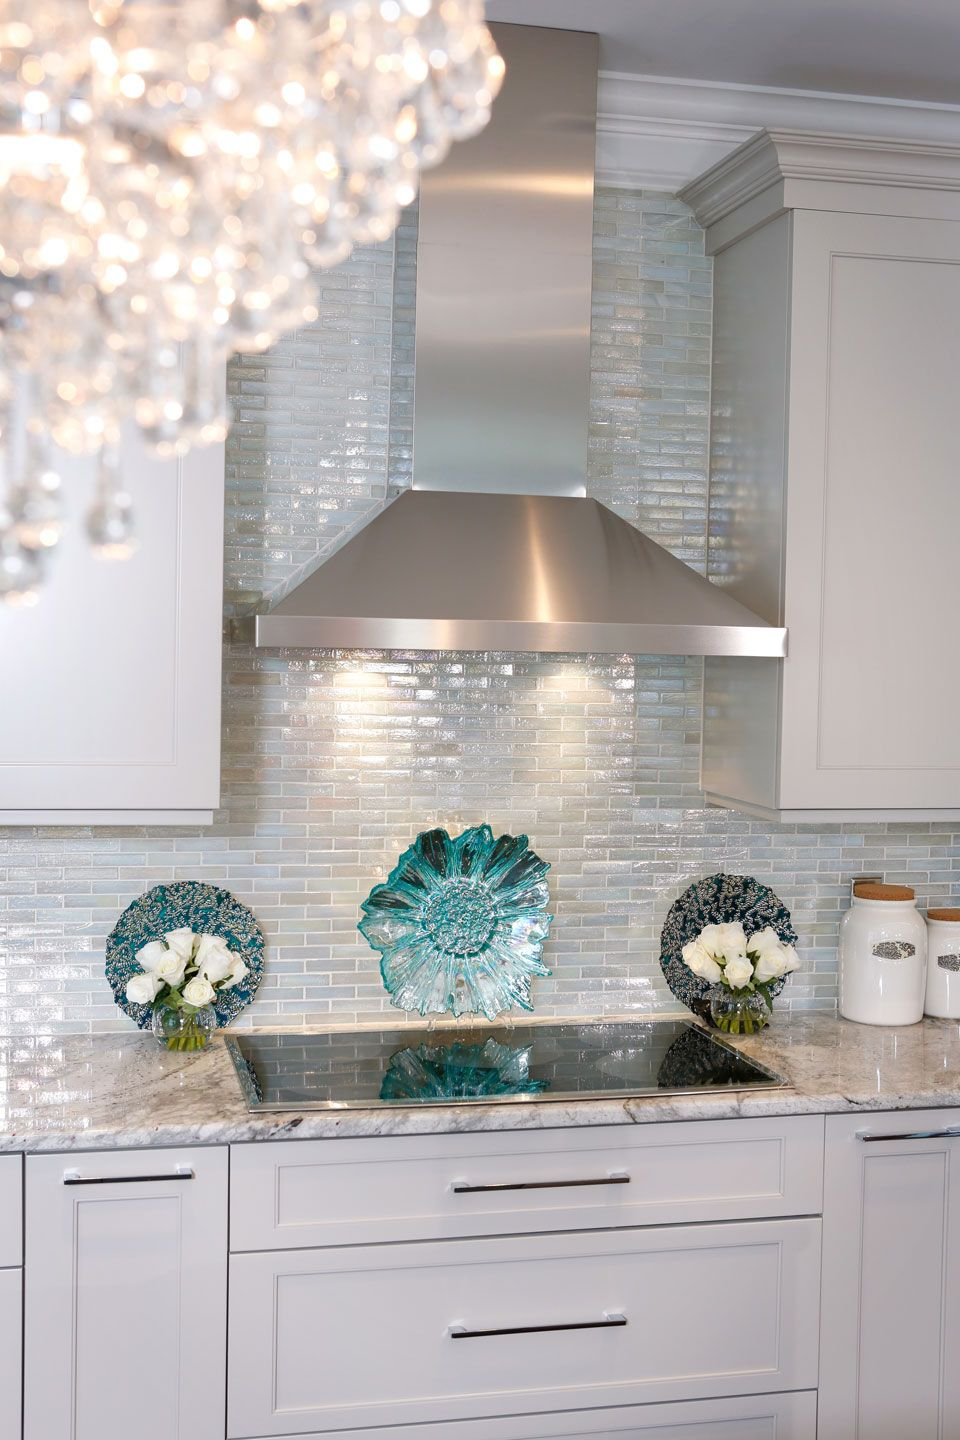 Superieur Iridescent Glass Tile By Lunada Bay. Stainless Hood With Taupe Cabinets.  Color Looks Good.